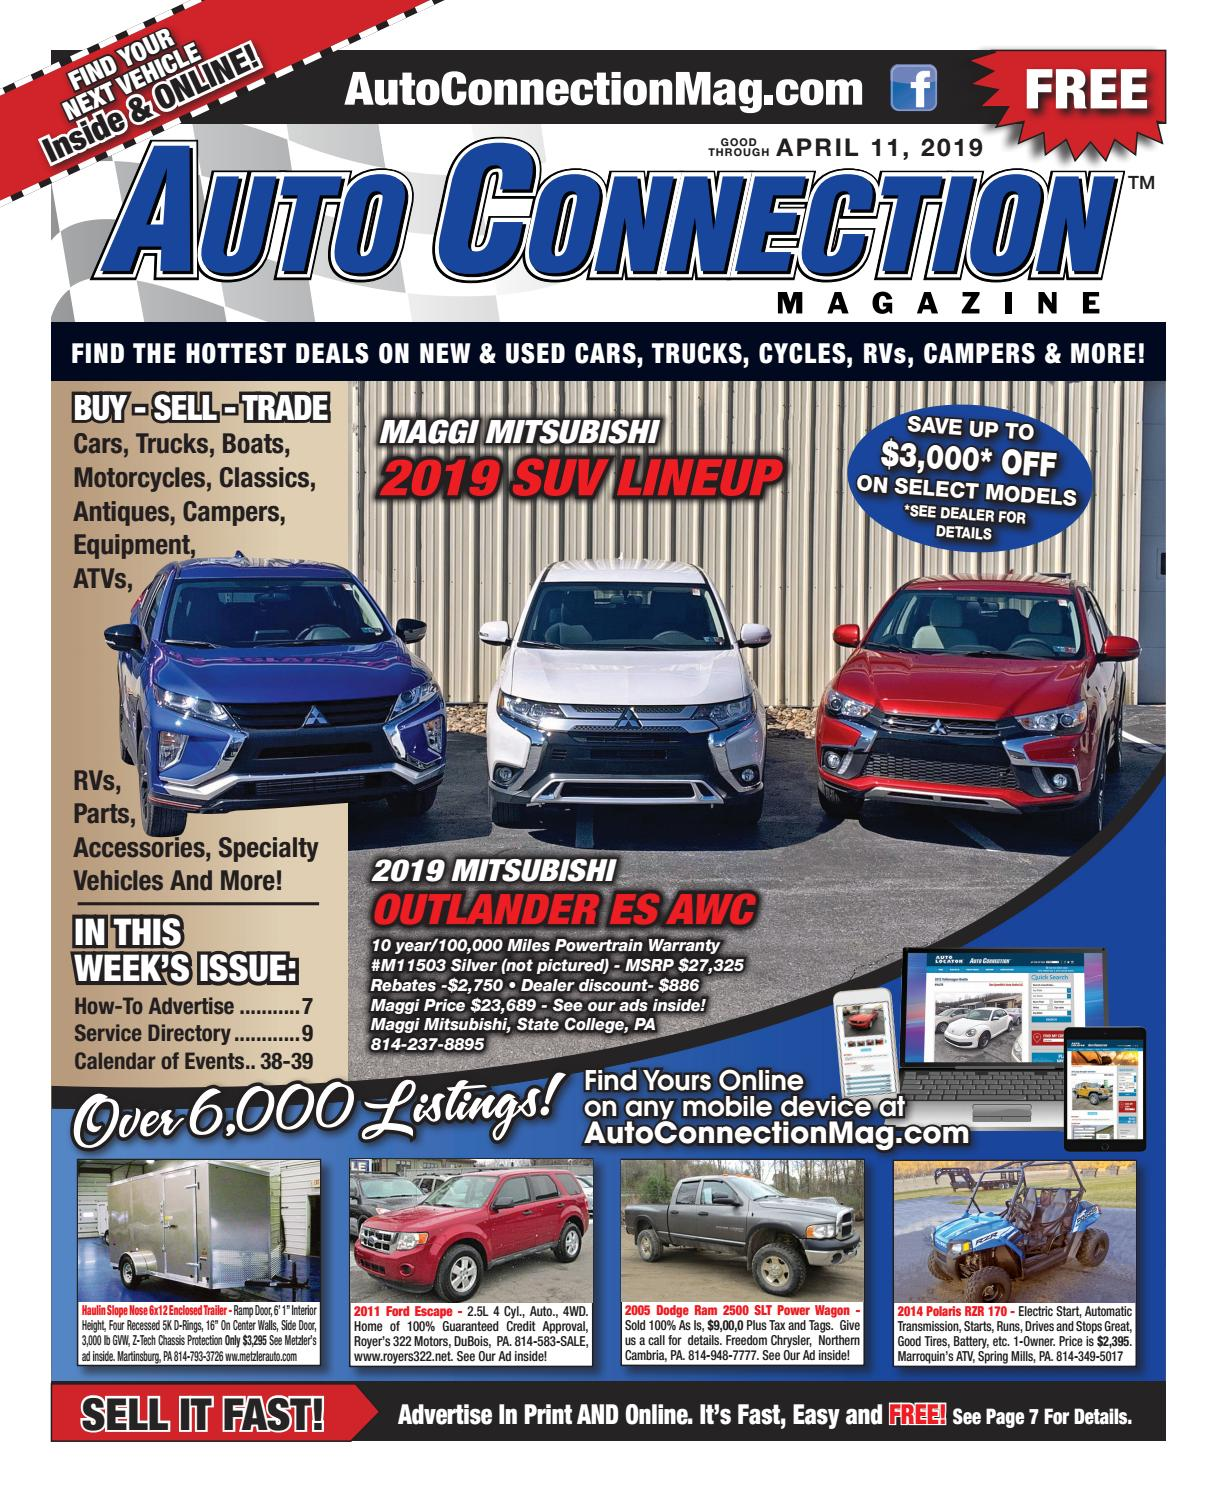 Murray Ford Dubois Pa >> 04 11 19 Auto Connection Magazine By Auto Locator And Auto